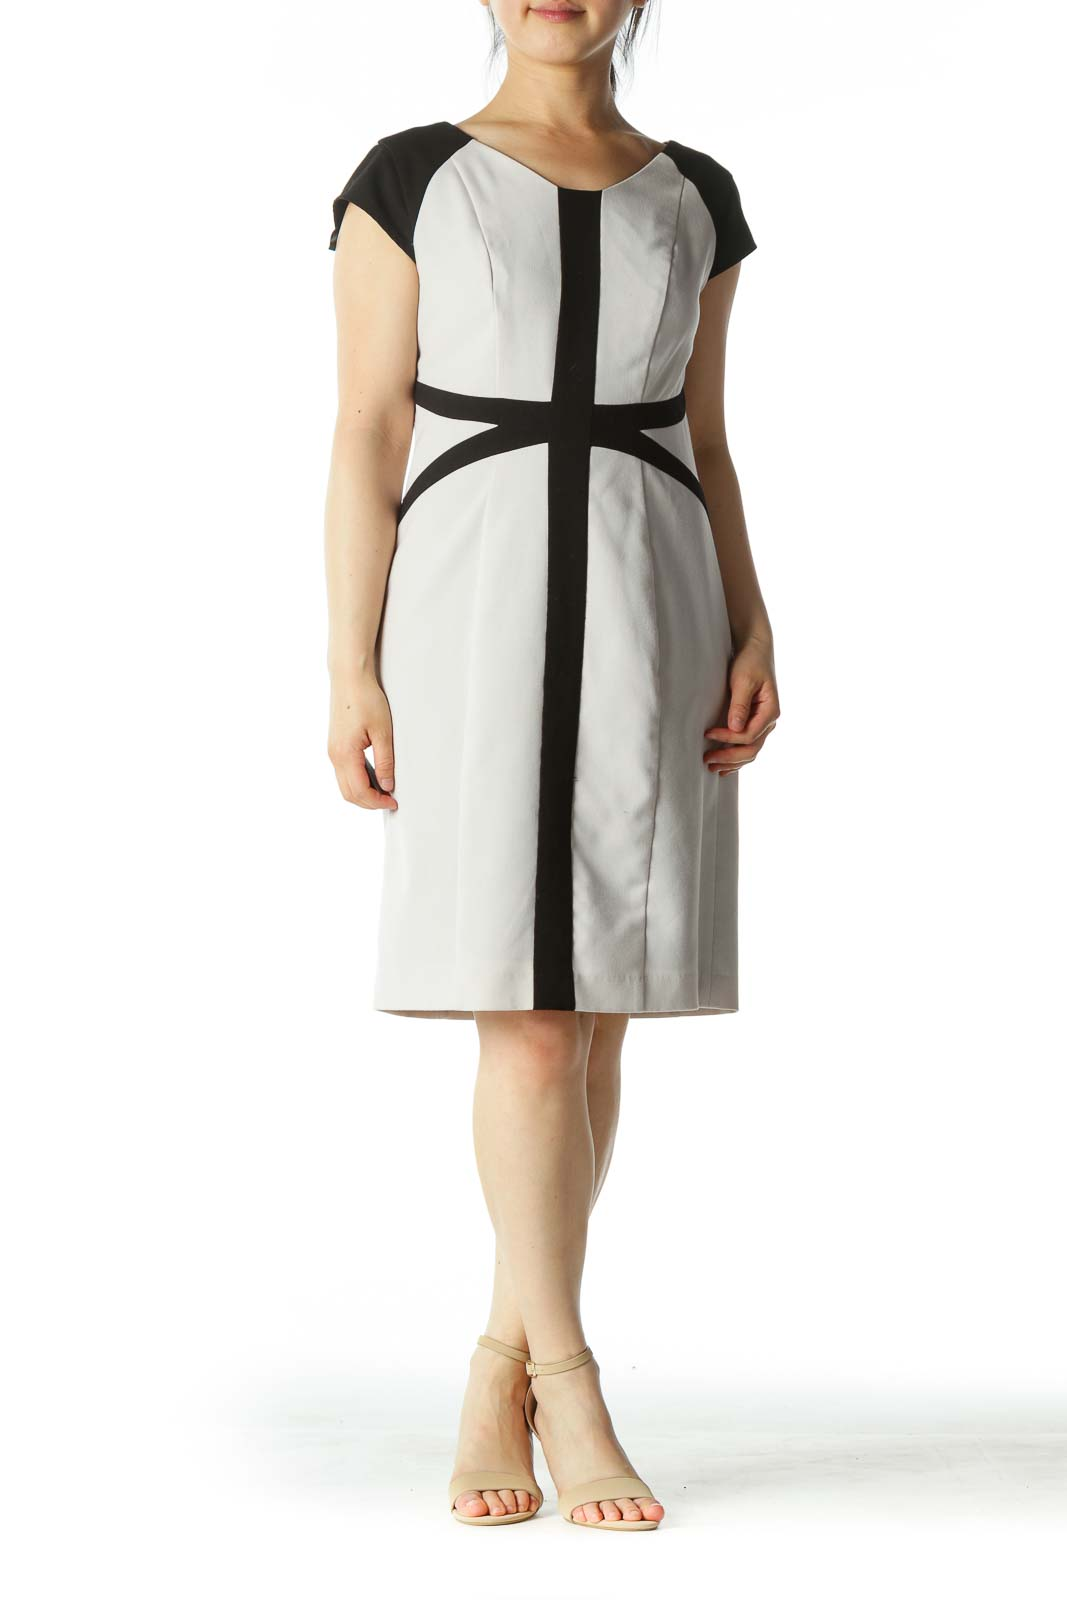 Gray Black Geometric Design Fitted Work Dress